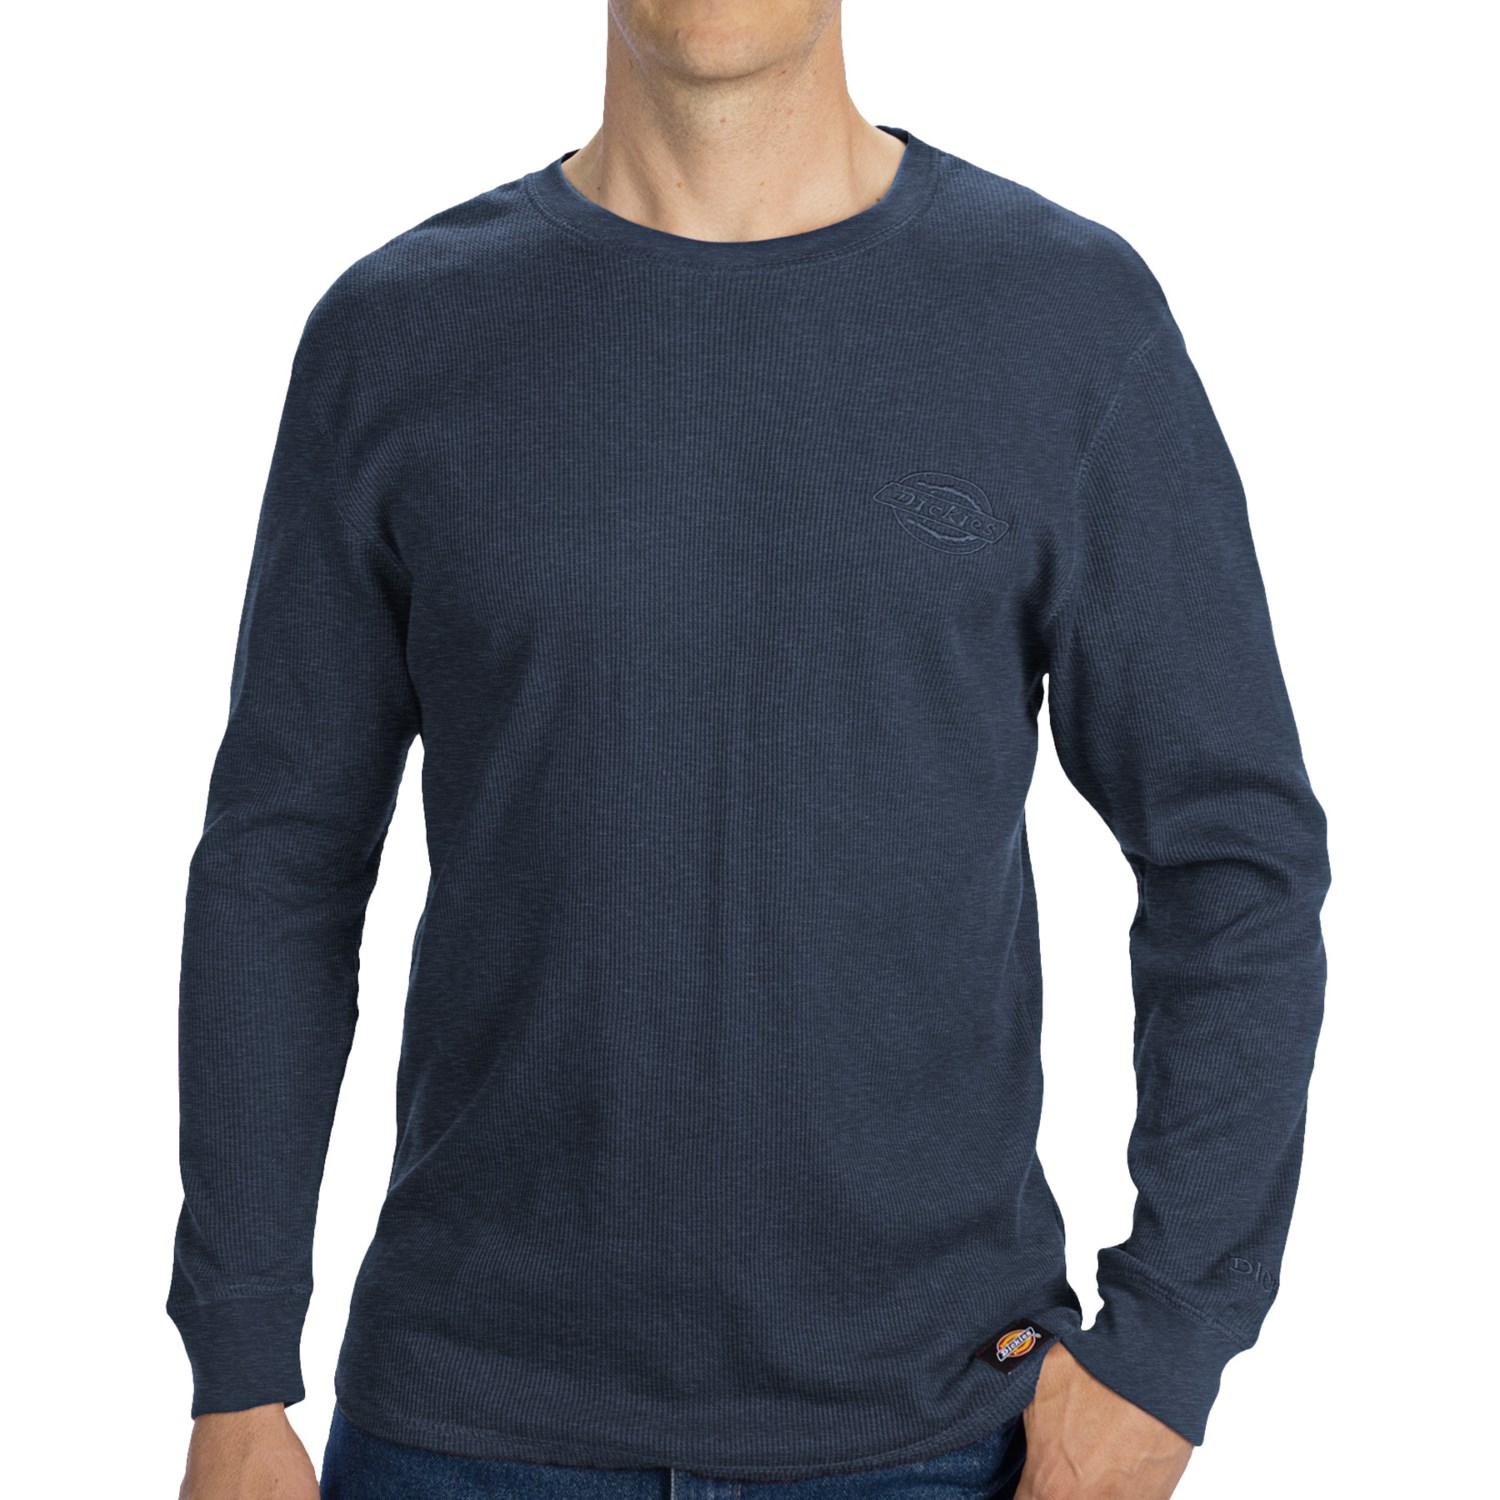 Find great deals on eBay for mens thermal shirts. Shop with confidence.